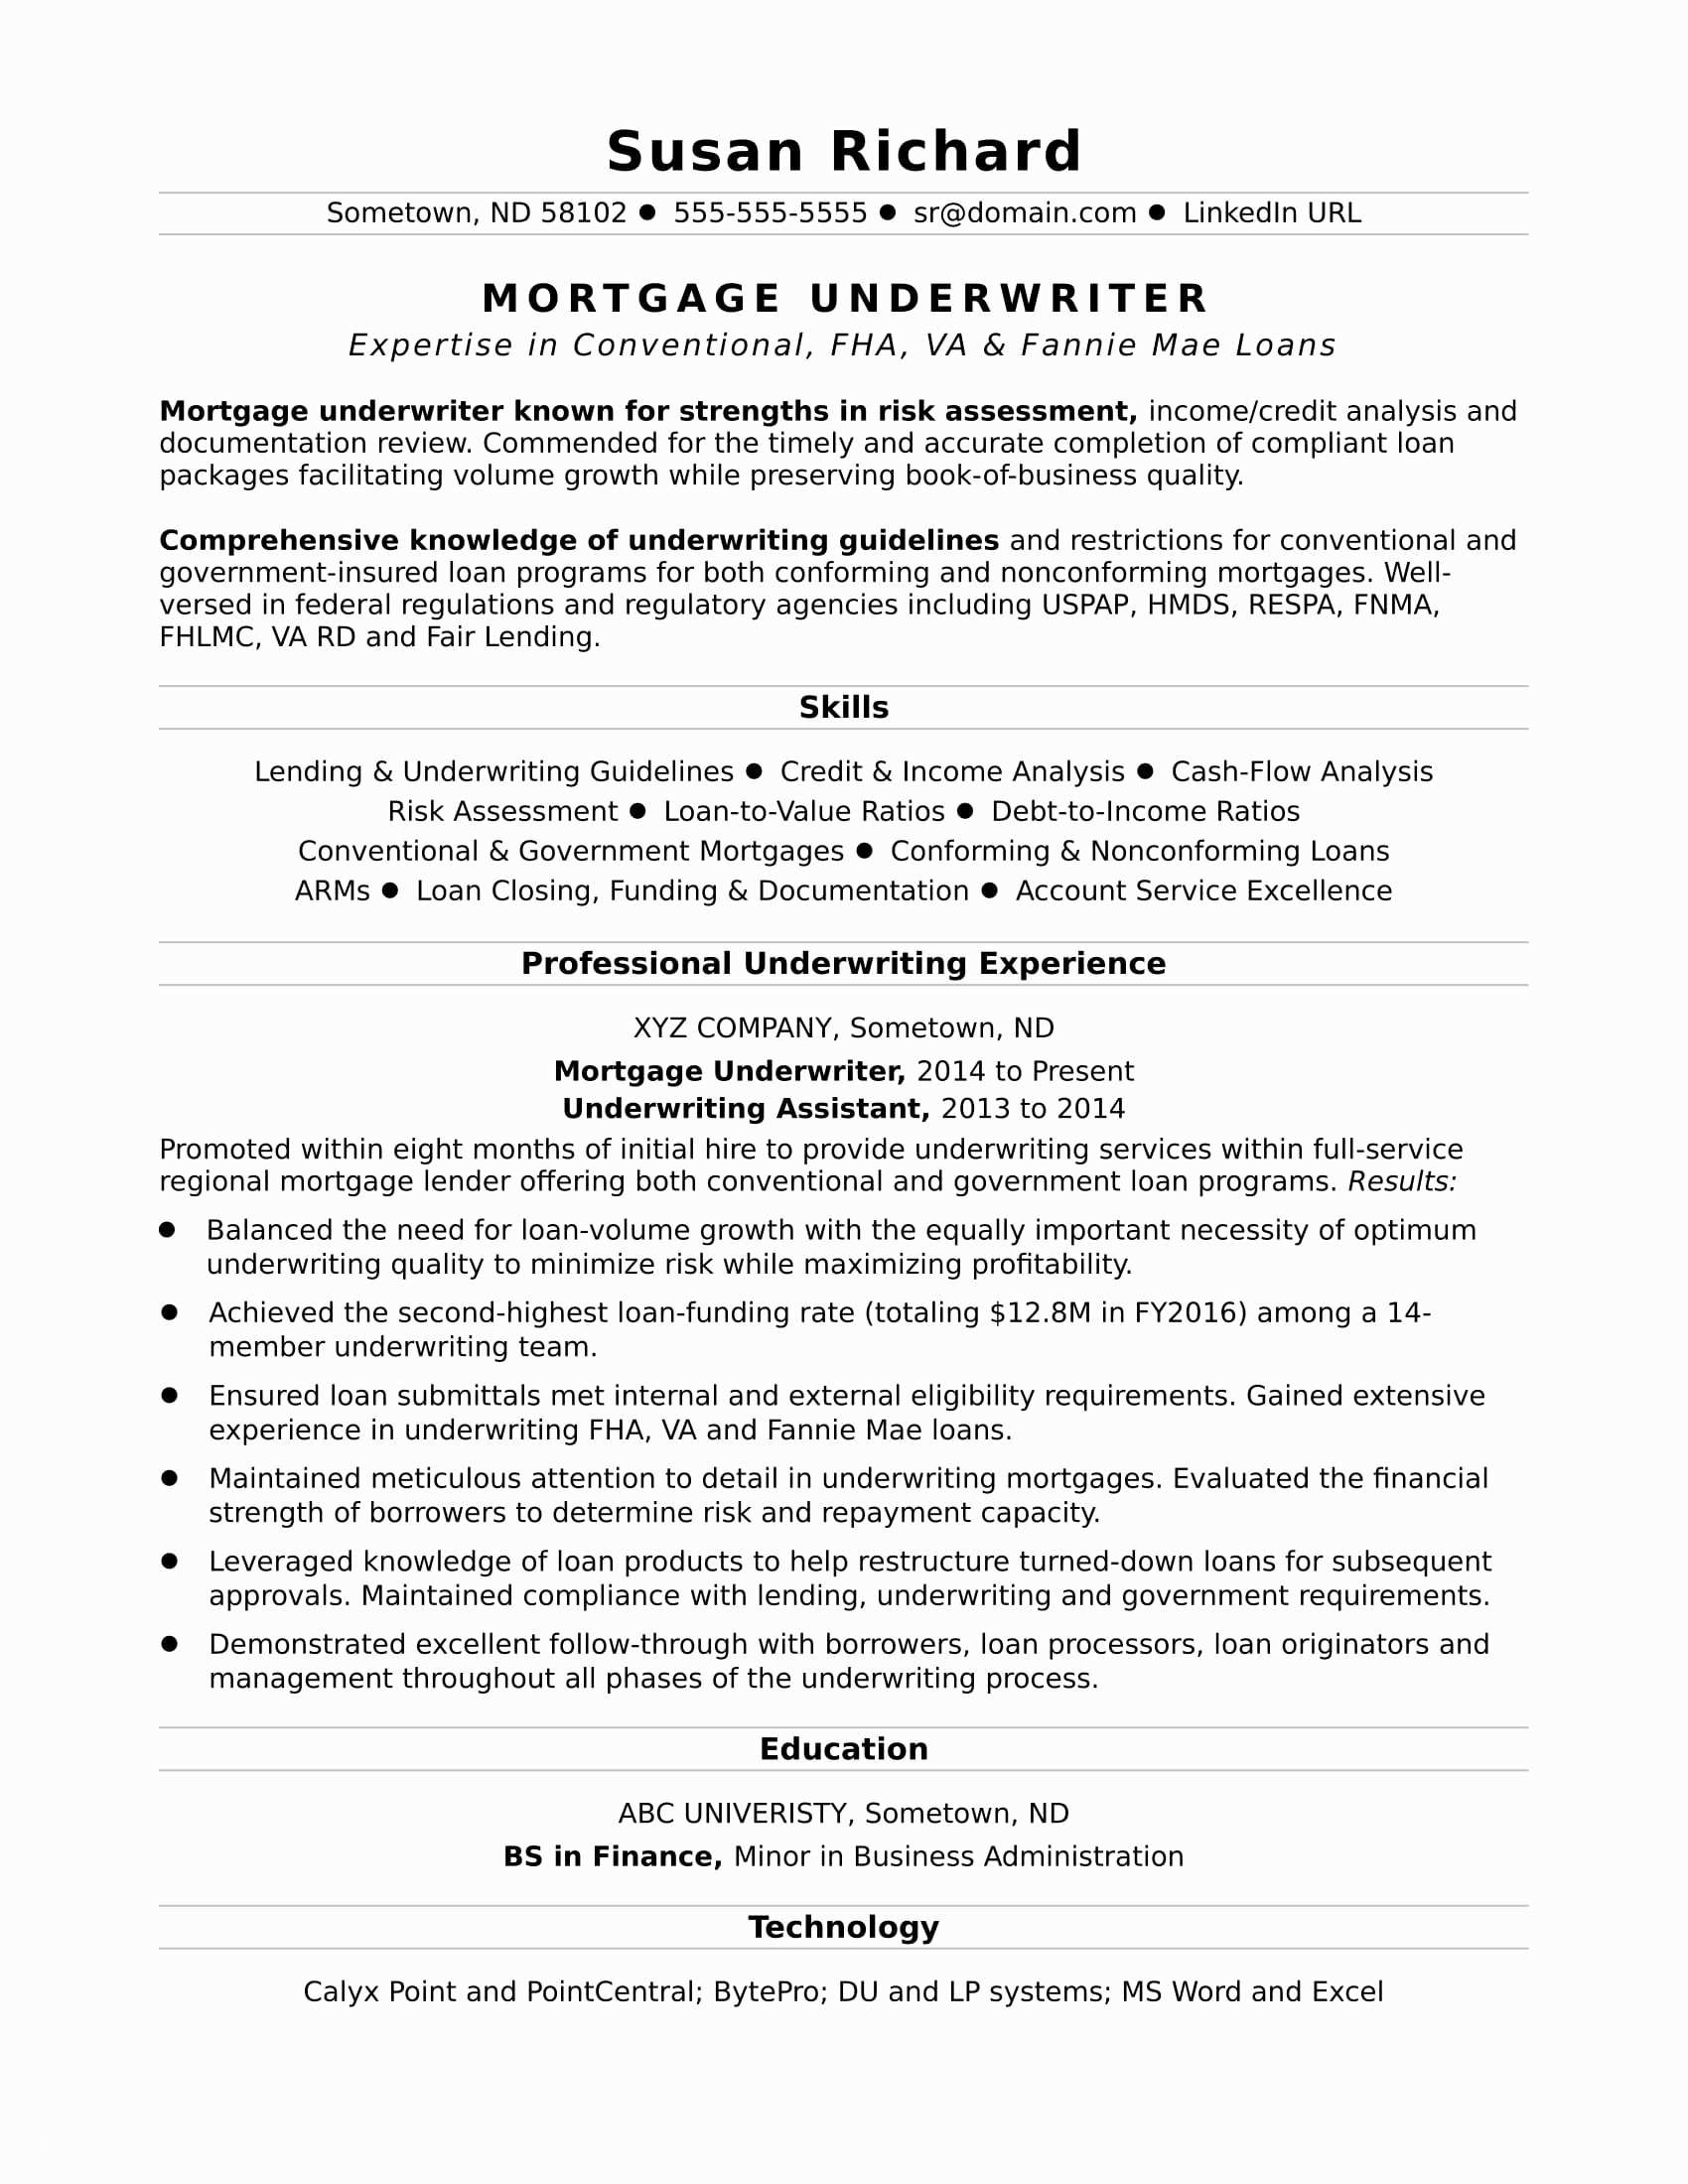 Letter Of Explanation for Mortgage Word Template - Teaching Resume Cover Letter New Sample Cover Letter Template Lovely